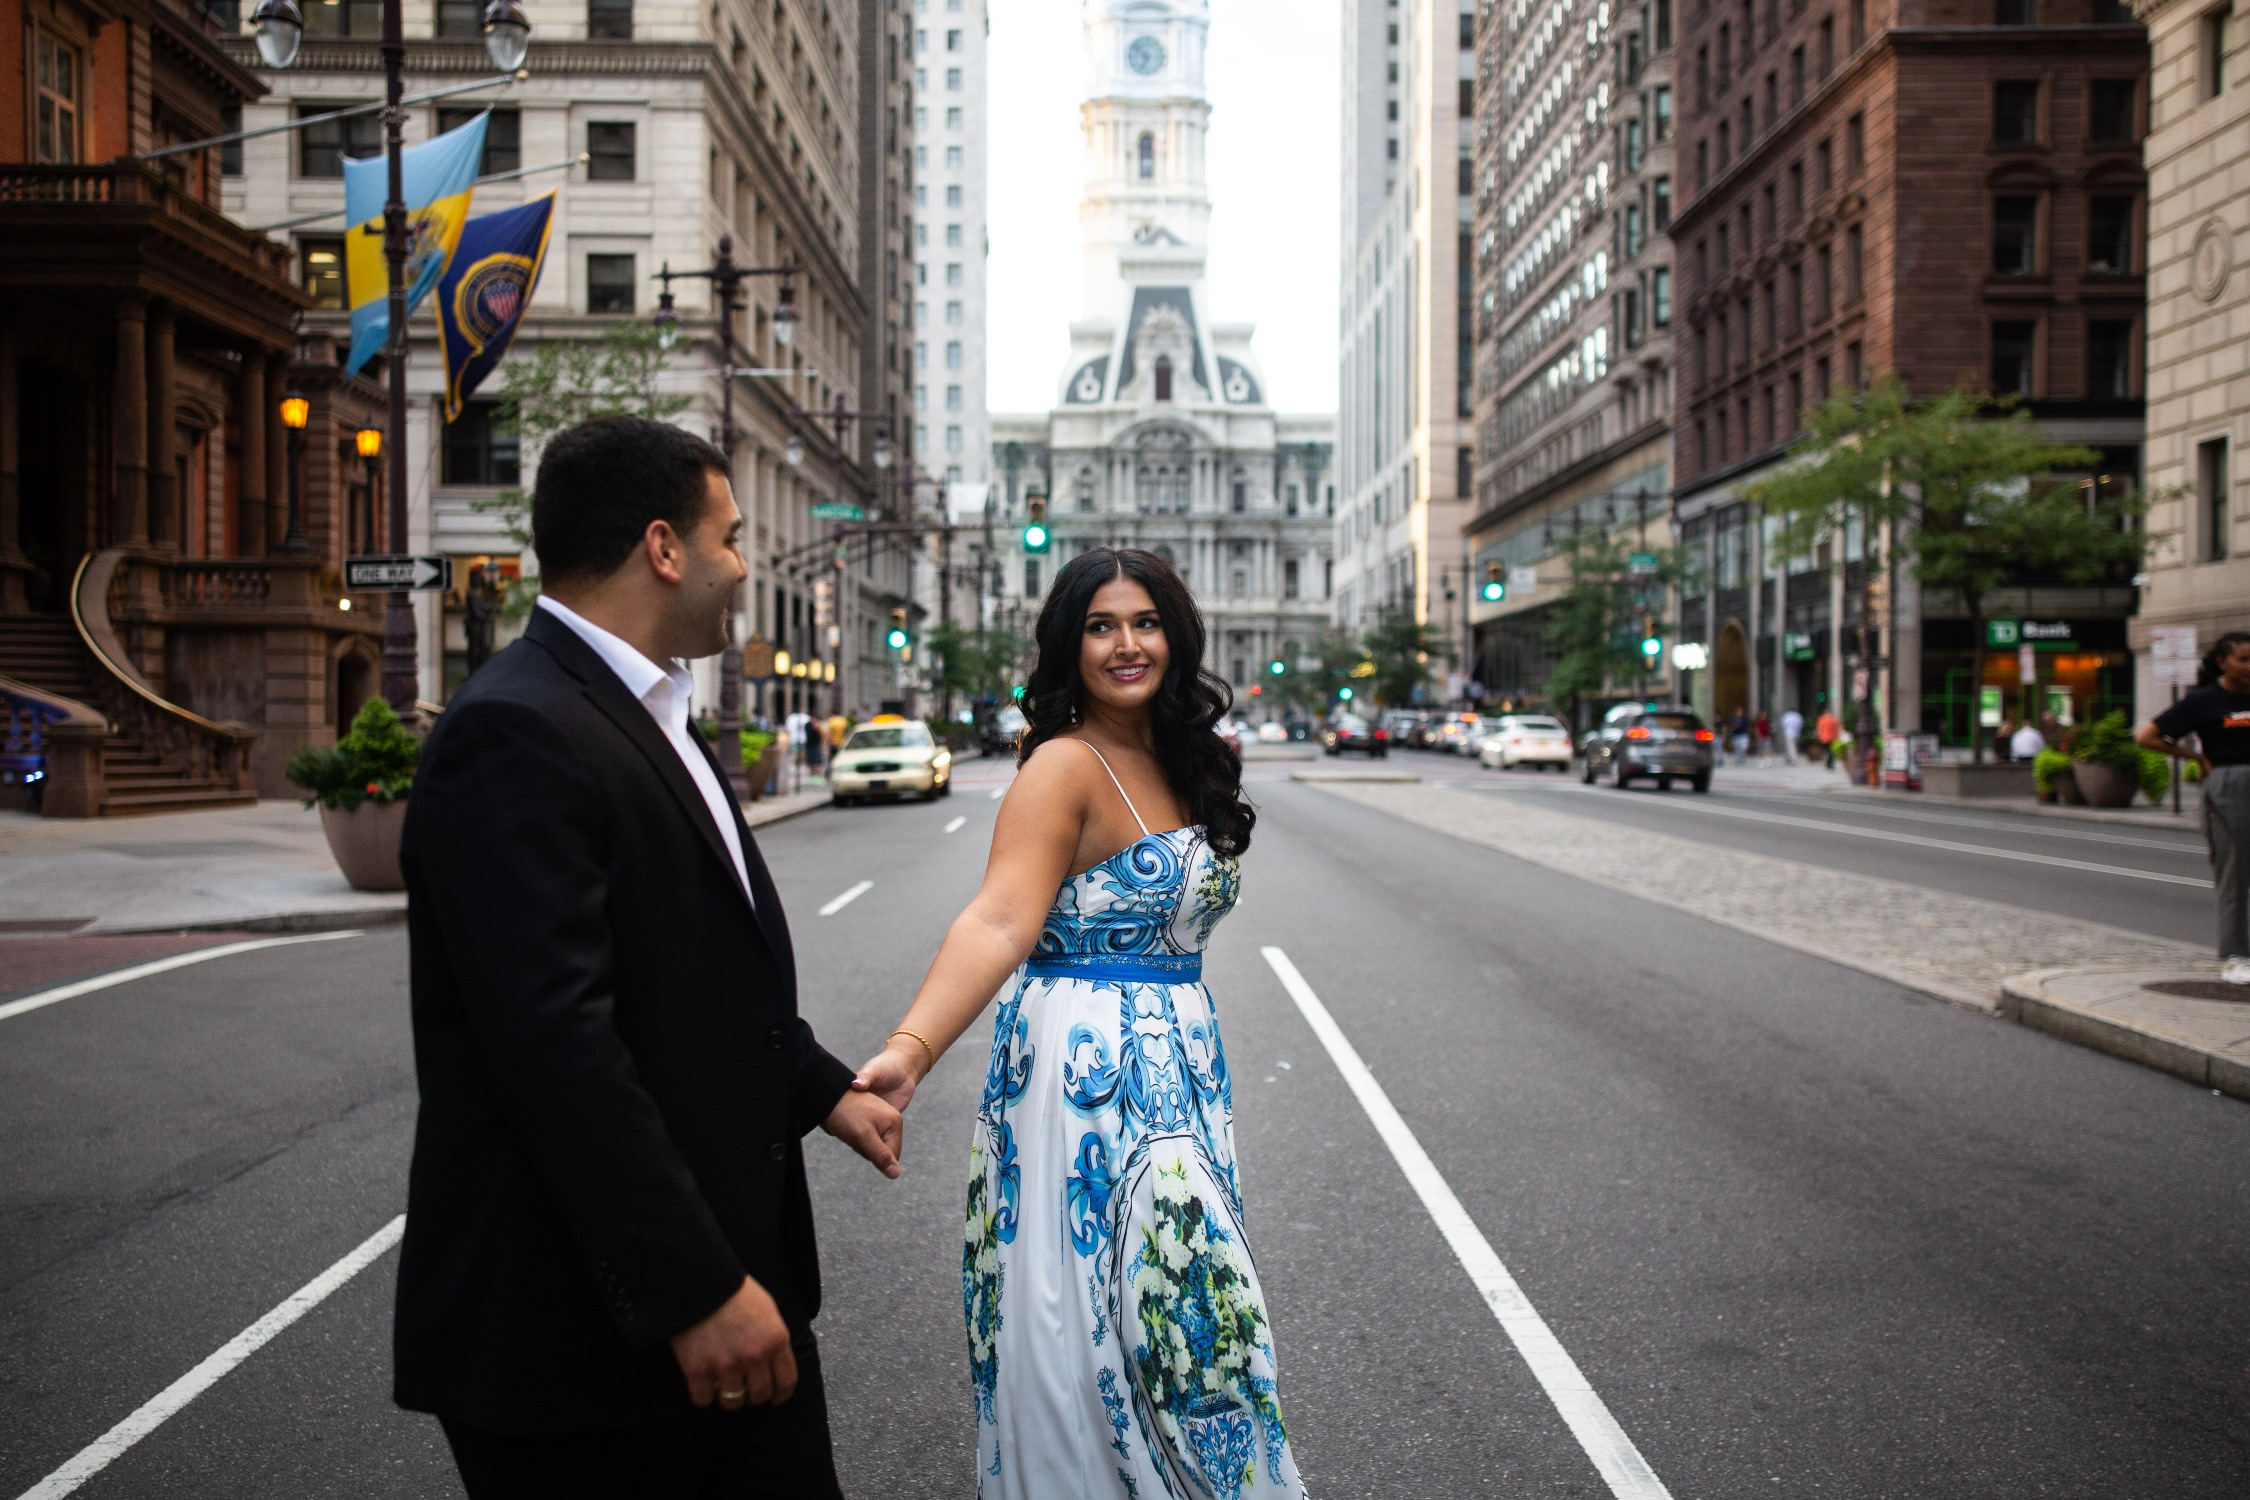 engagement photo session ideas philly